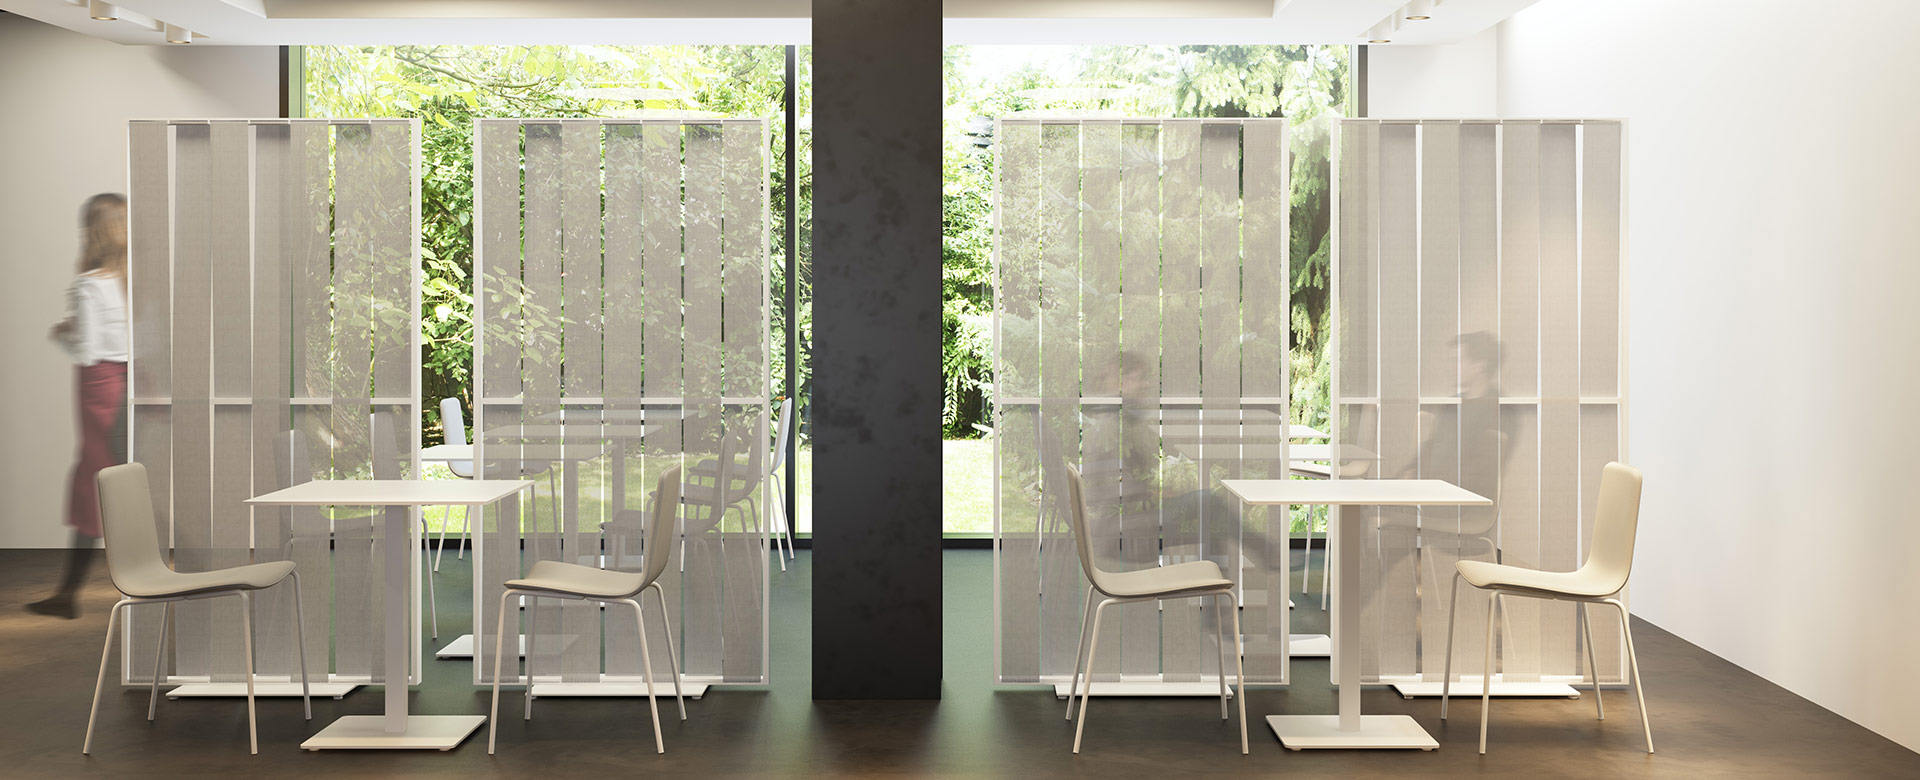 Malva Movable Screens